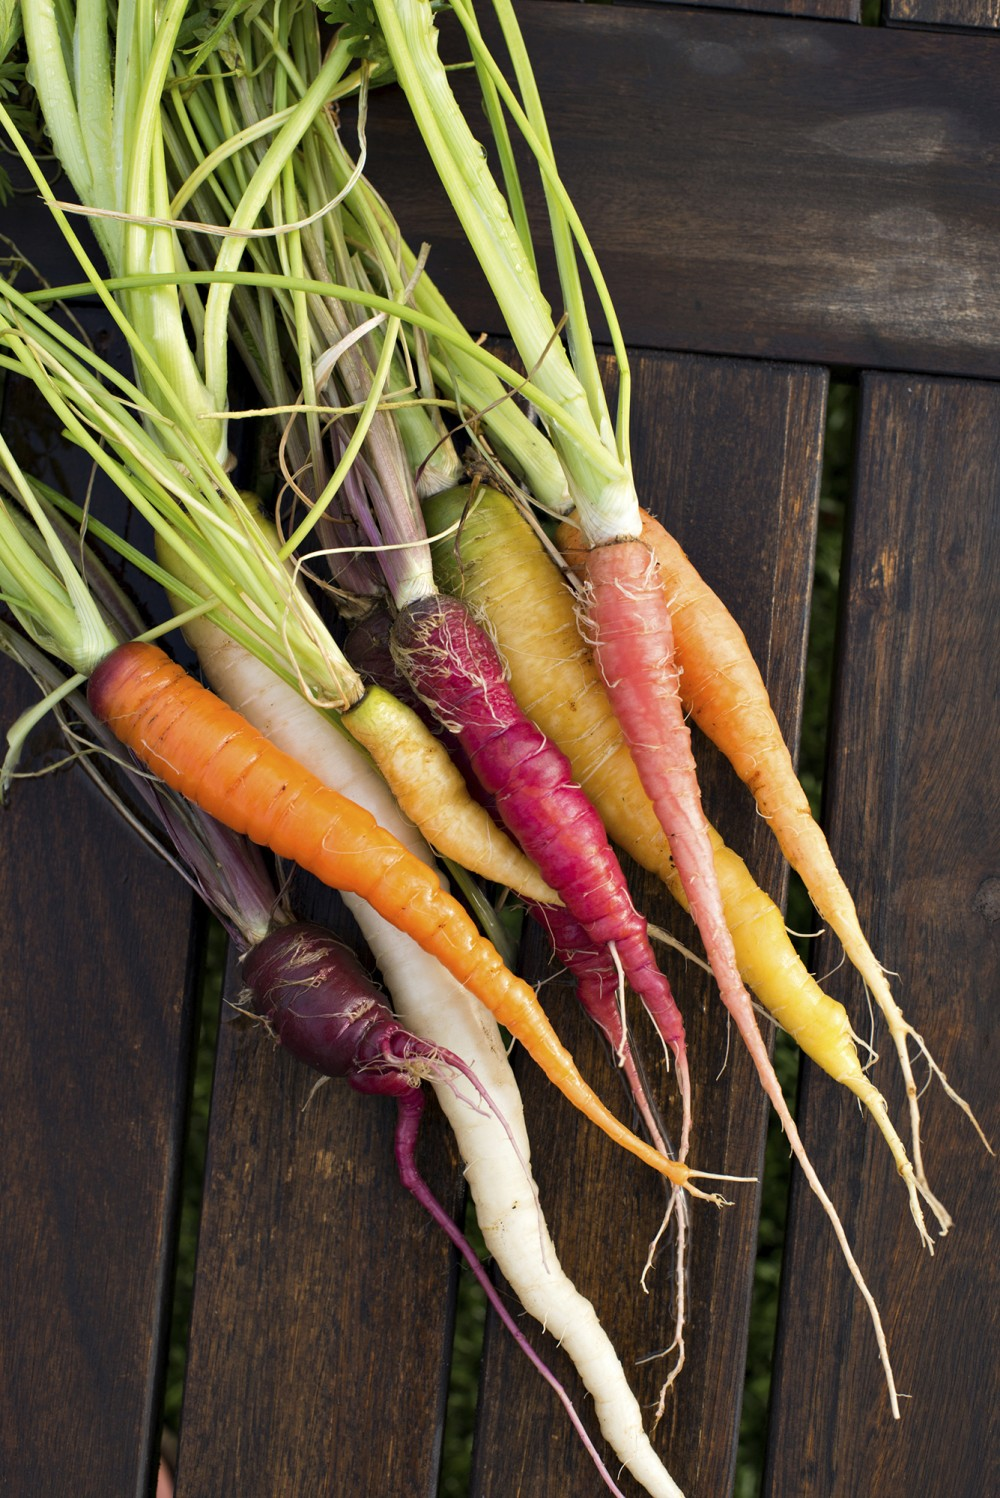 Rainbow carrots were originally developed by the USDA as an experiment to get more nutrients in food. Photo: Mark Skalny/Getty Images/iStockphoto